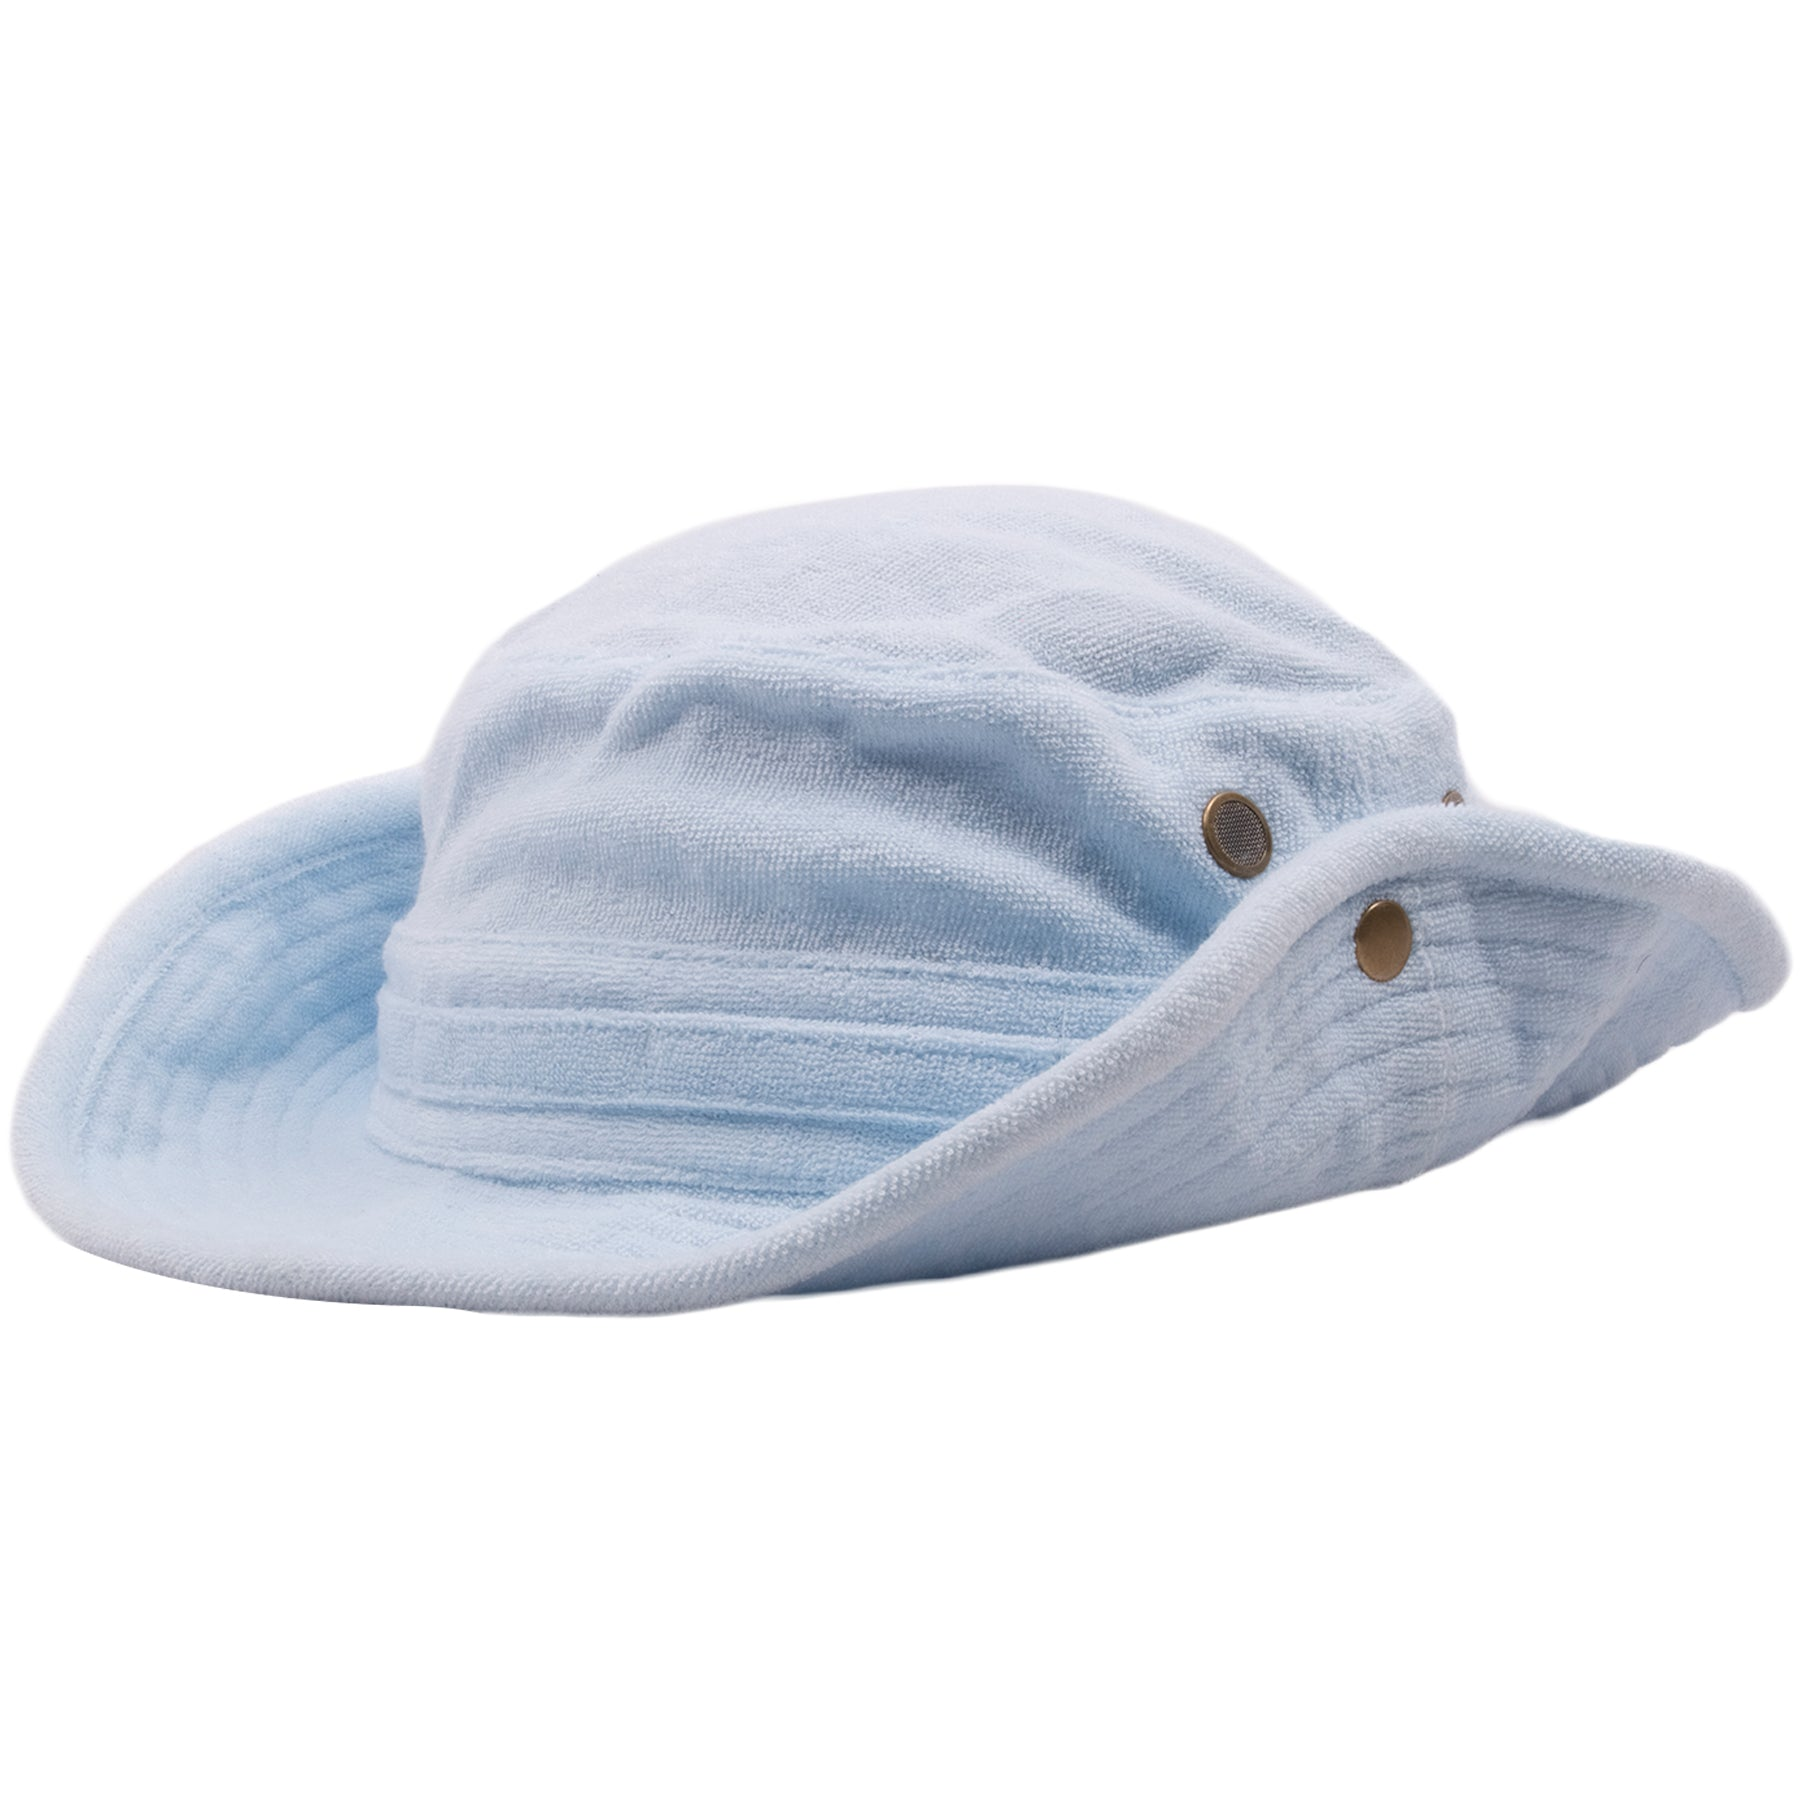 ... light blue and entirely  The sides of the blank terry cloth bucket hat  feature a button that allows the brim ... 74af9dec59ec